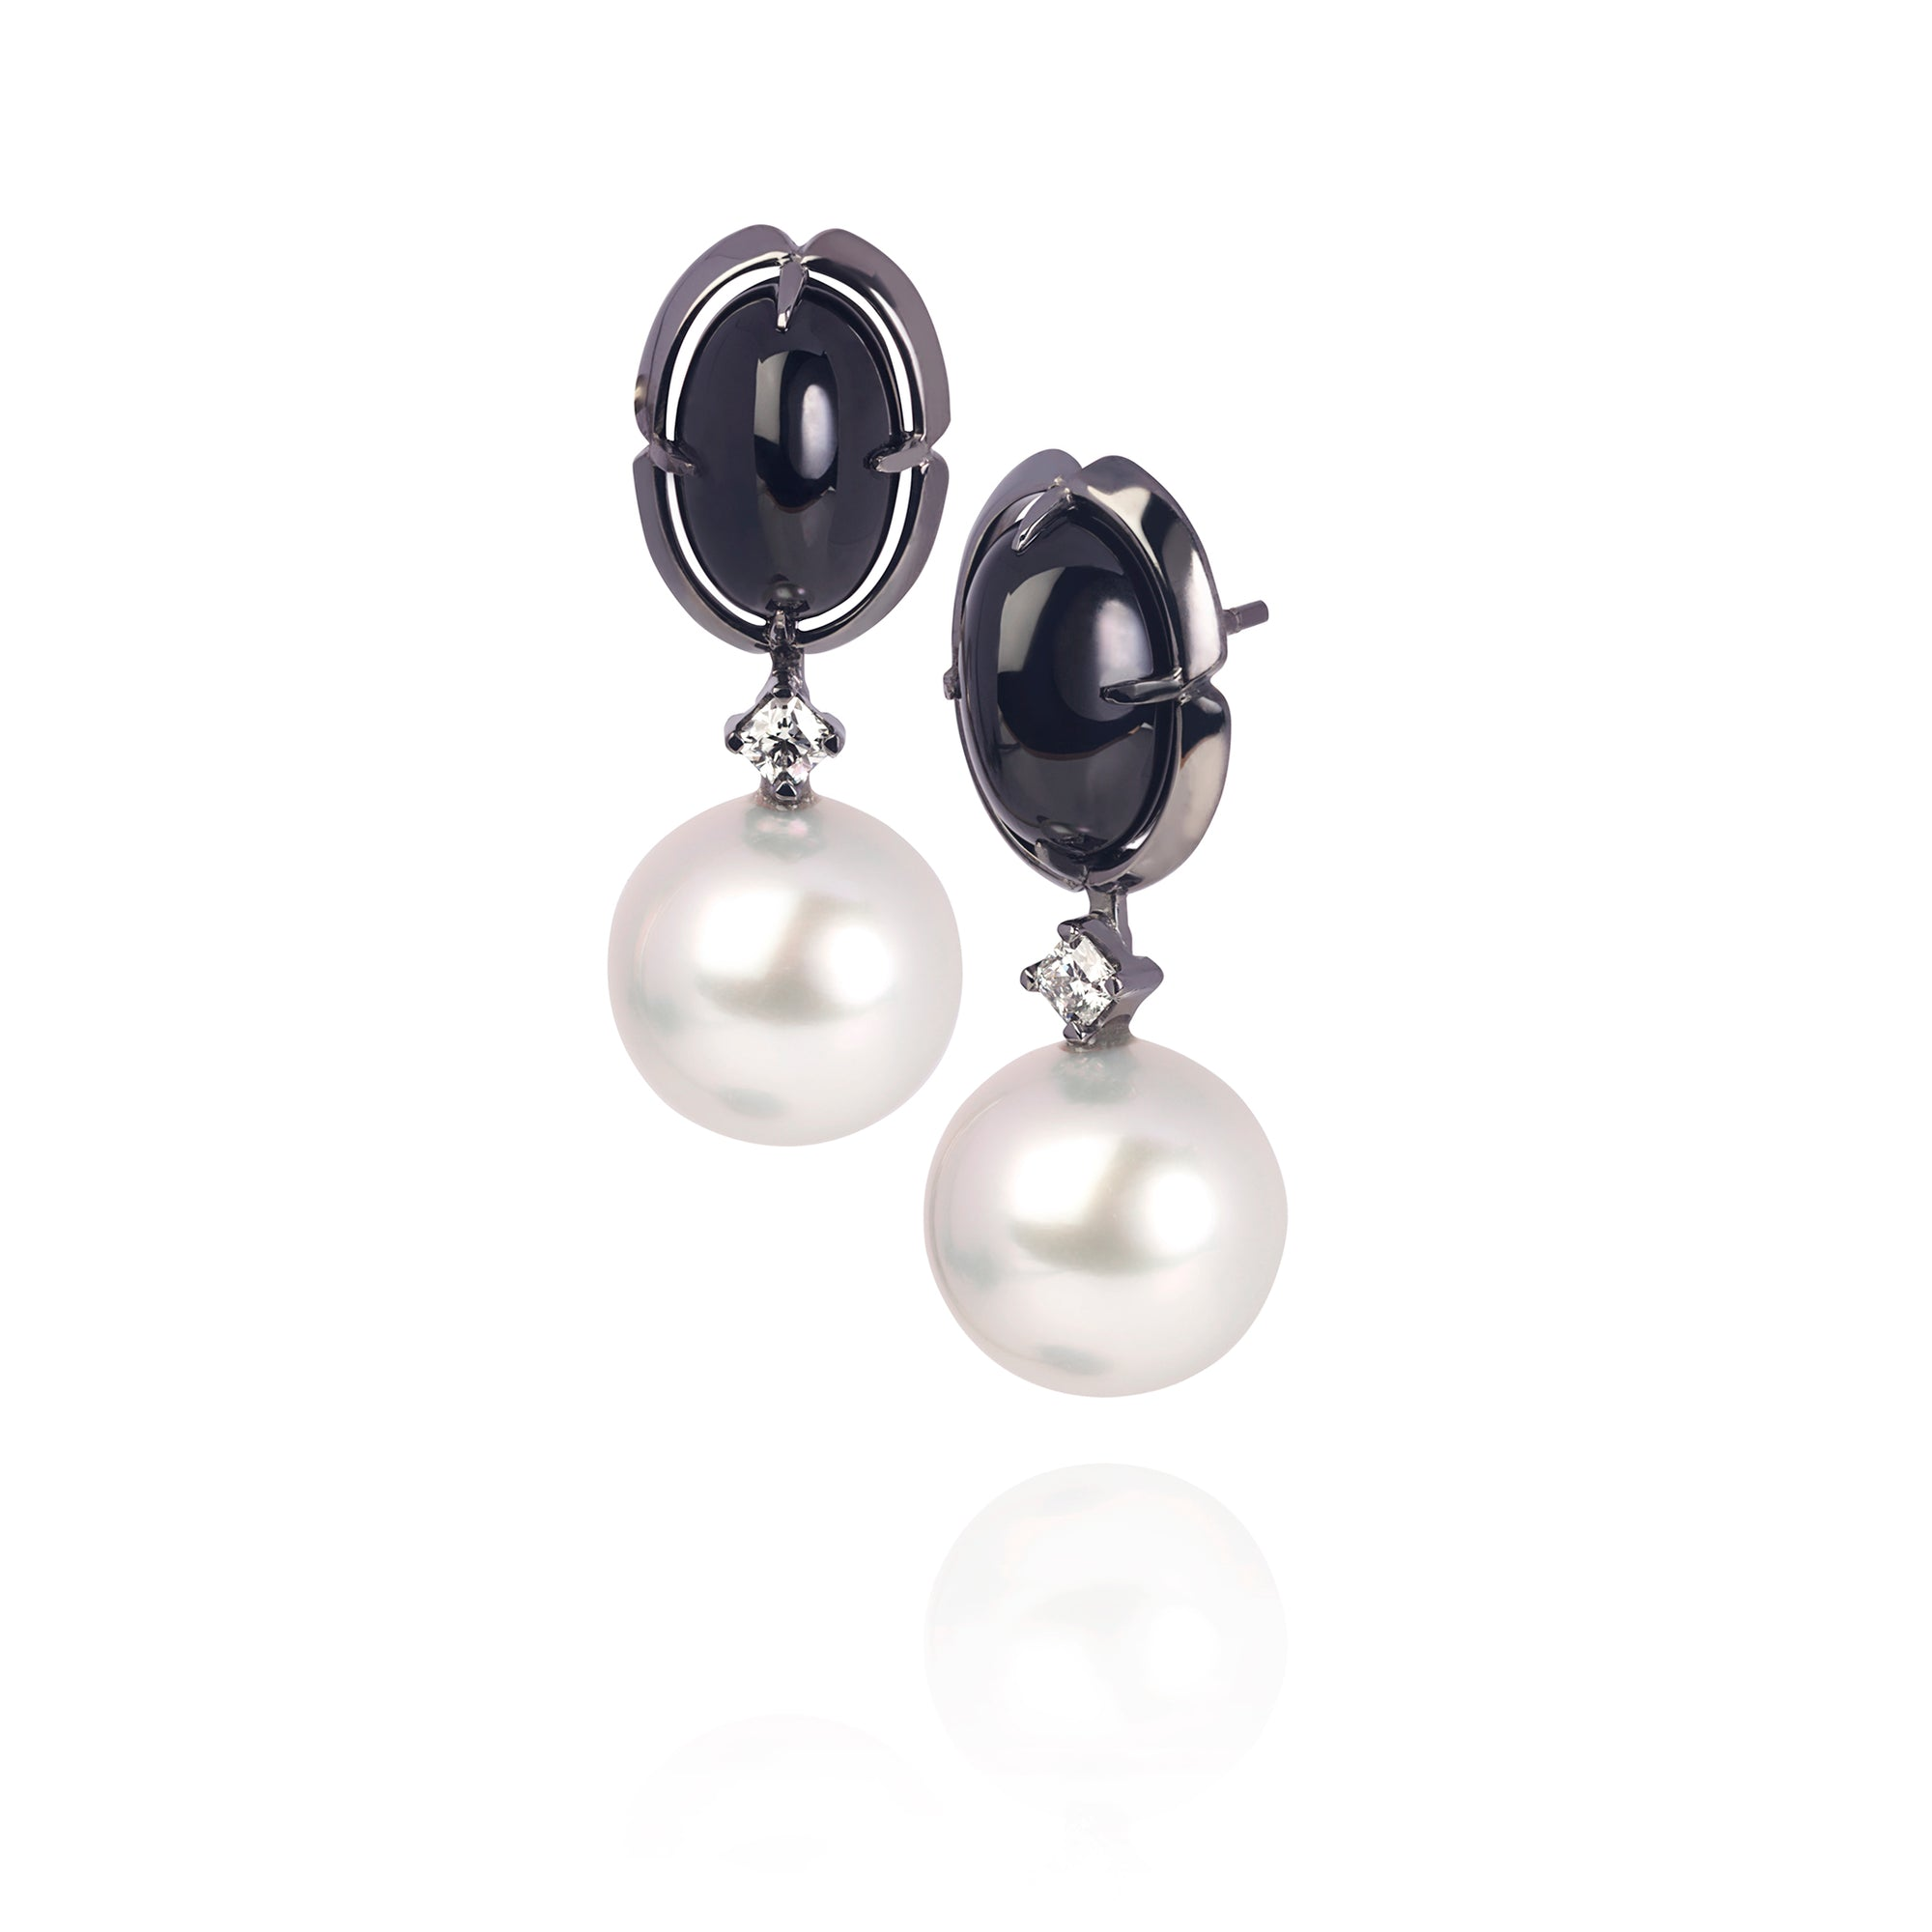 Black Spinel and Australian South Sea Pearl Earrings